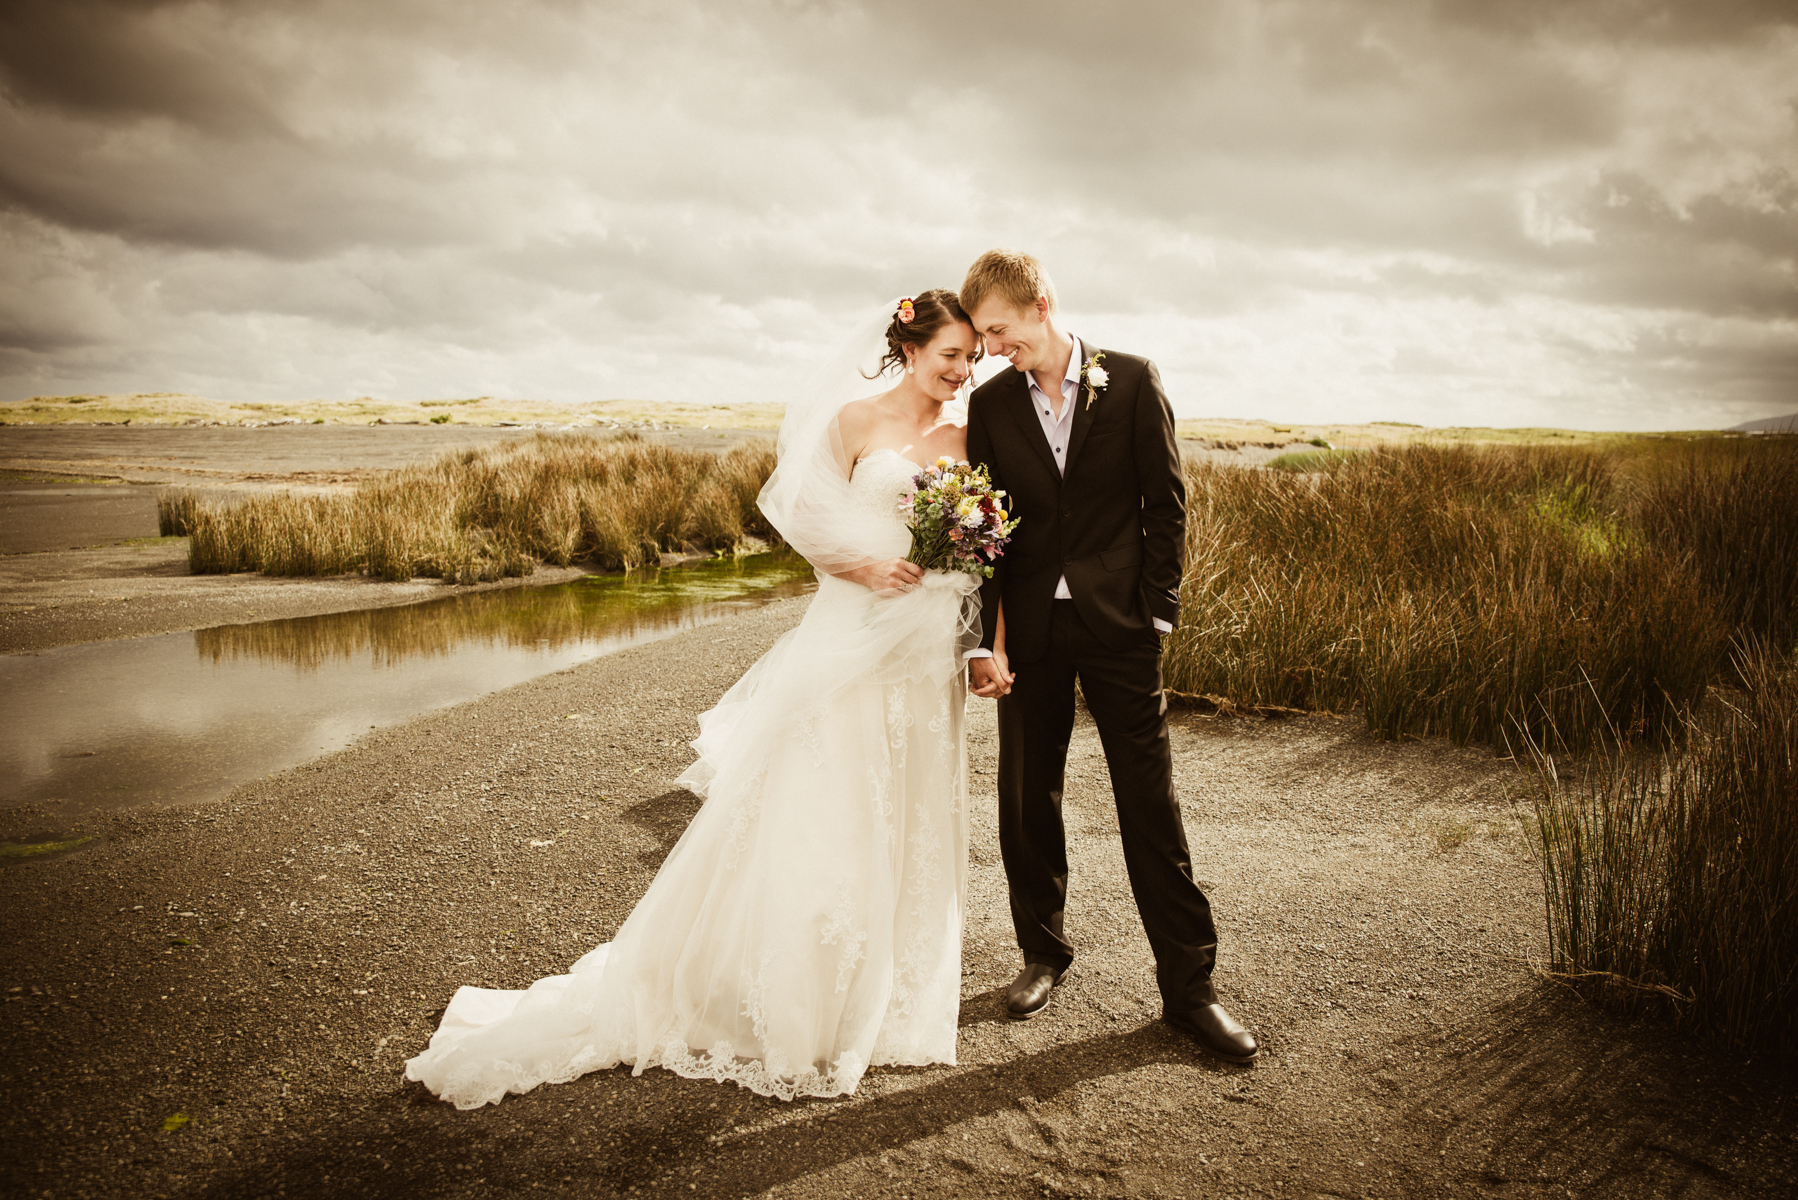 Wedding at the Onoke Spit, Wairarapa# Wedding Photographer Wairarapa